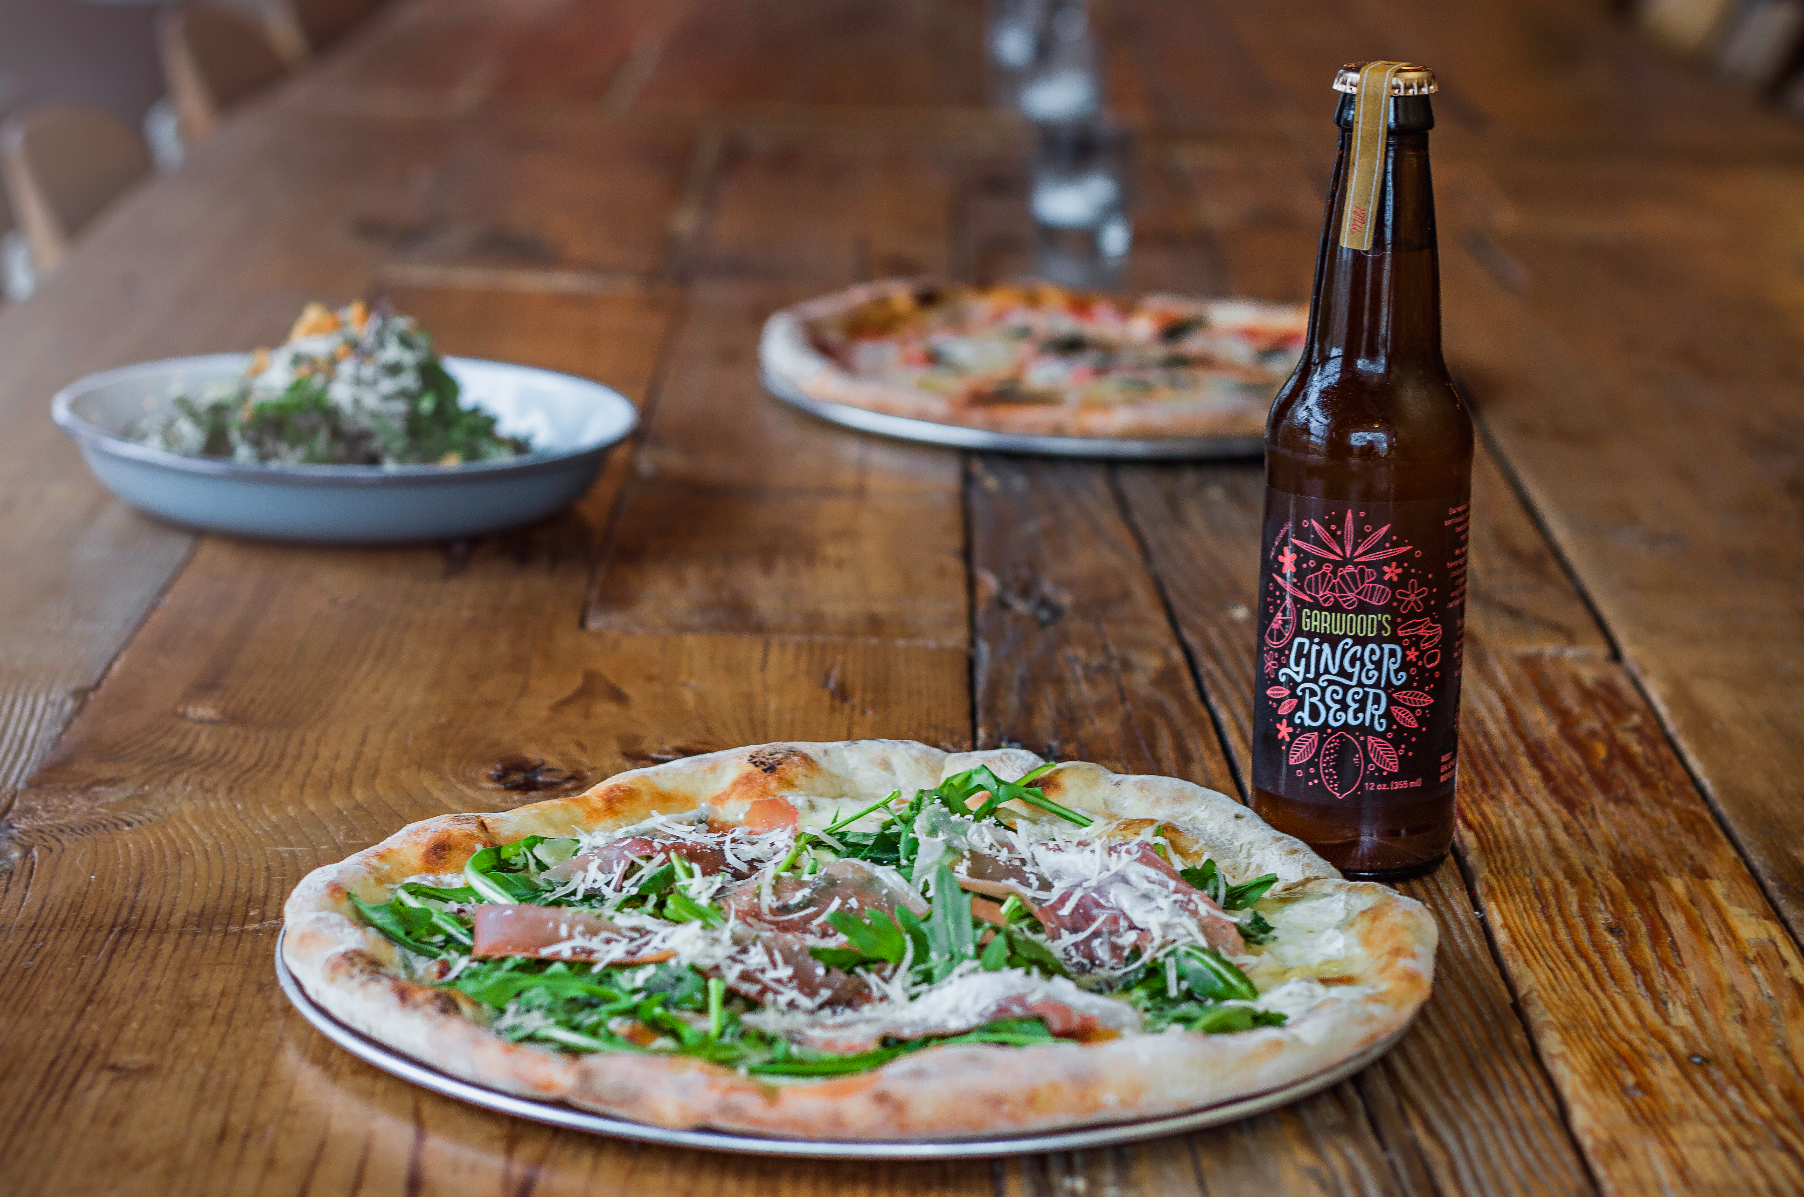 From the traditional simplicity of the Margherita to the complex flavor-melding of the Rocket Man, Pizza Nono focuses on crafting quality pizza from fresh ingredients. Photo by Talyn Sherer